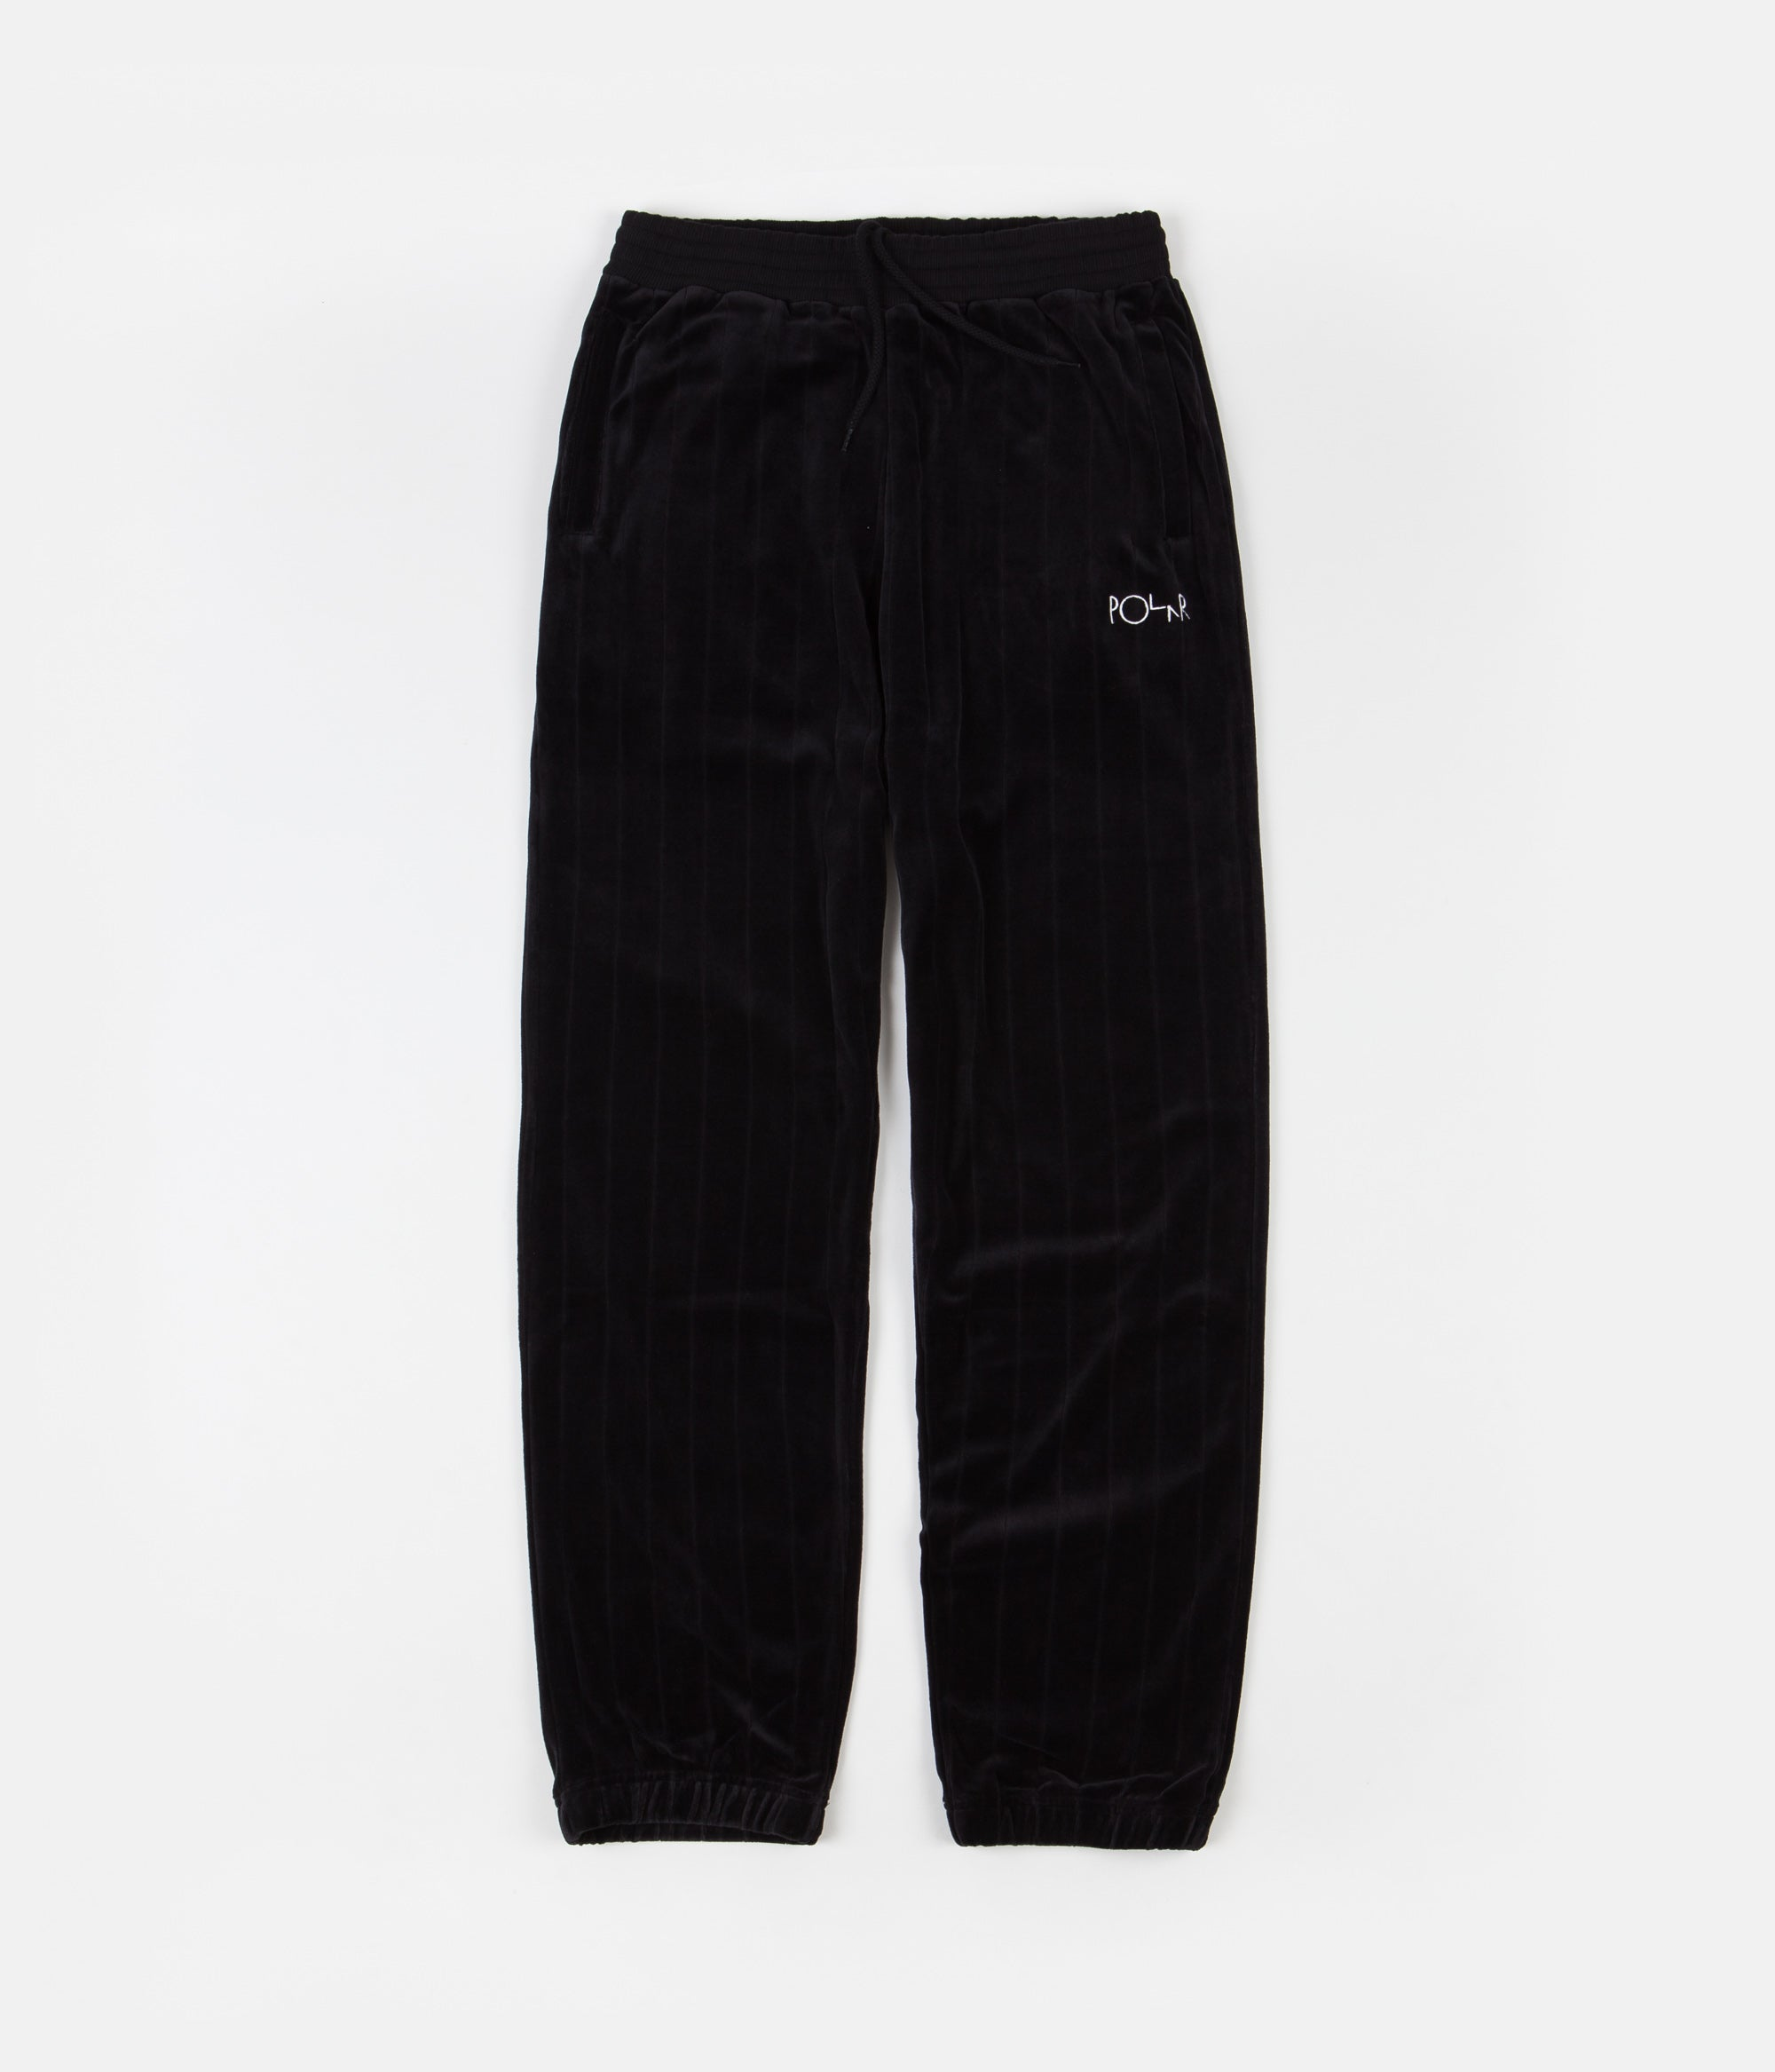 Polar Velour Sweatpants - Black